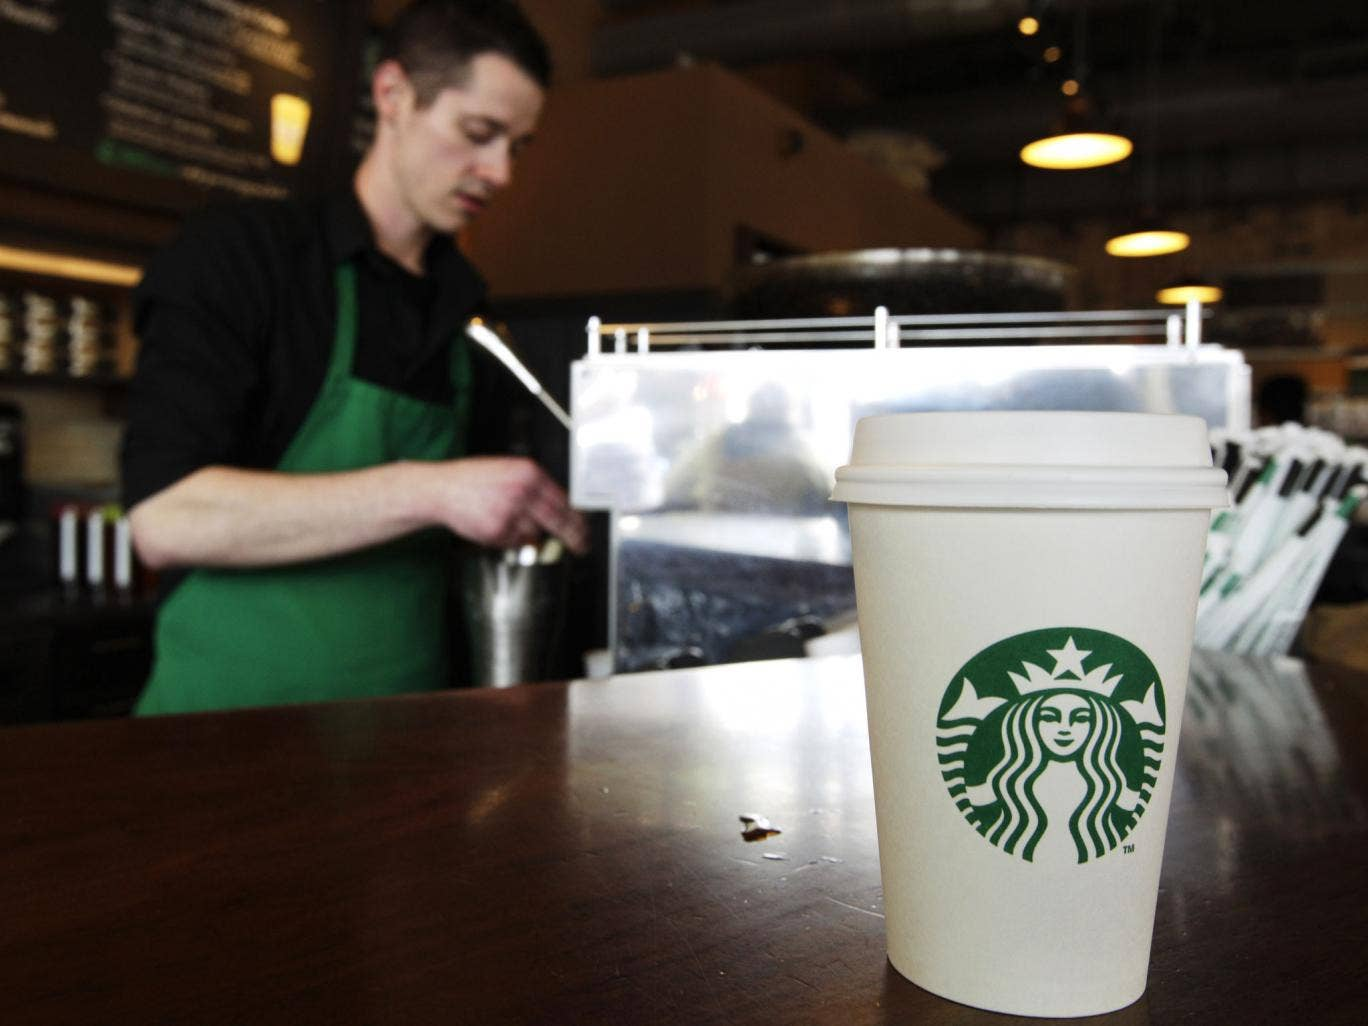 Starbucks is among companies criticised over their tax bill